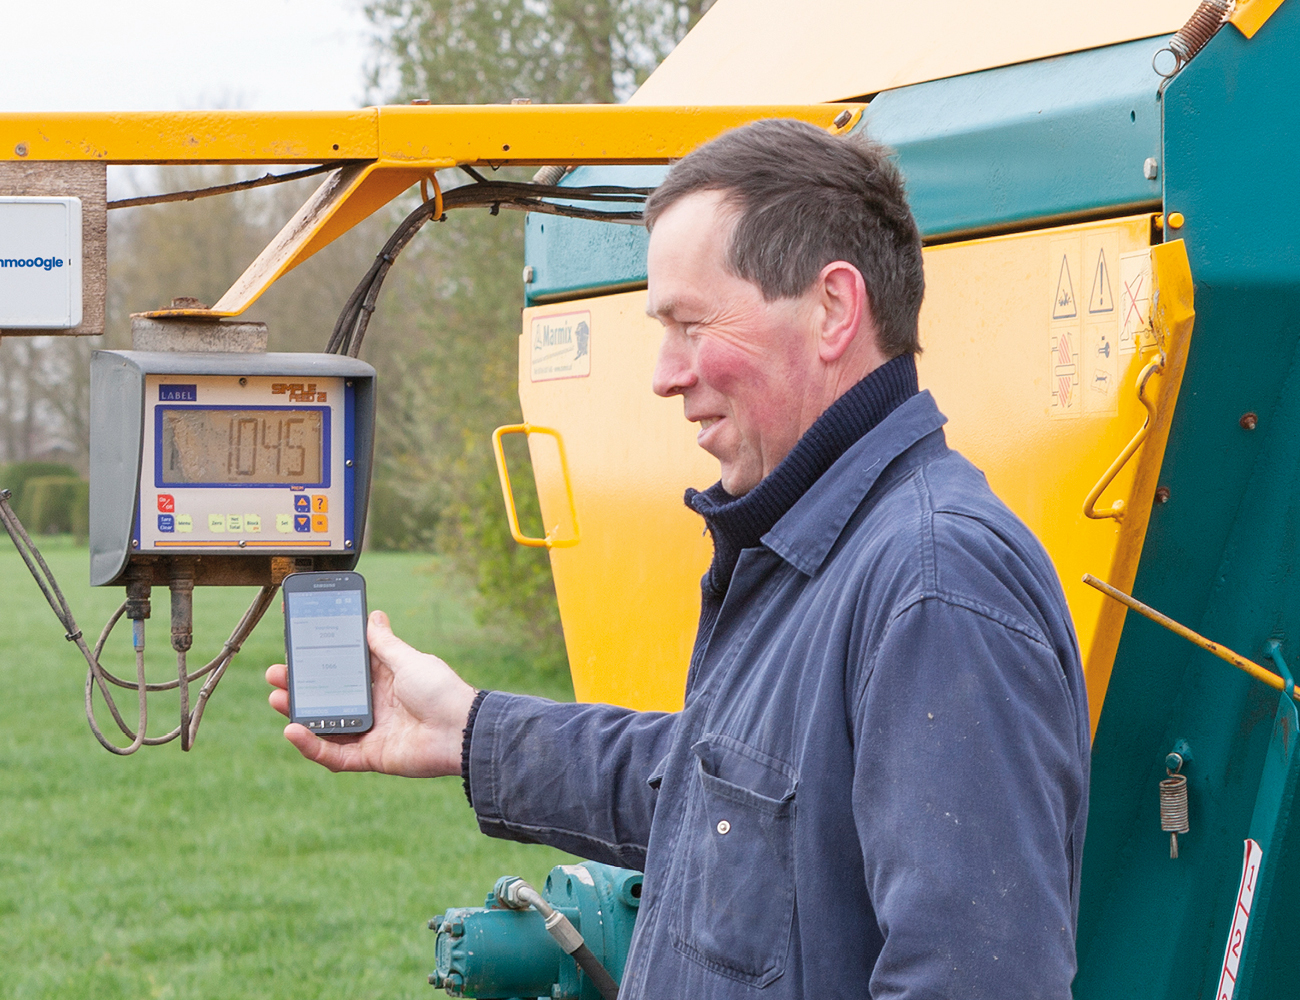 feeding dairy cows total mixed ration using mobile app